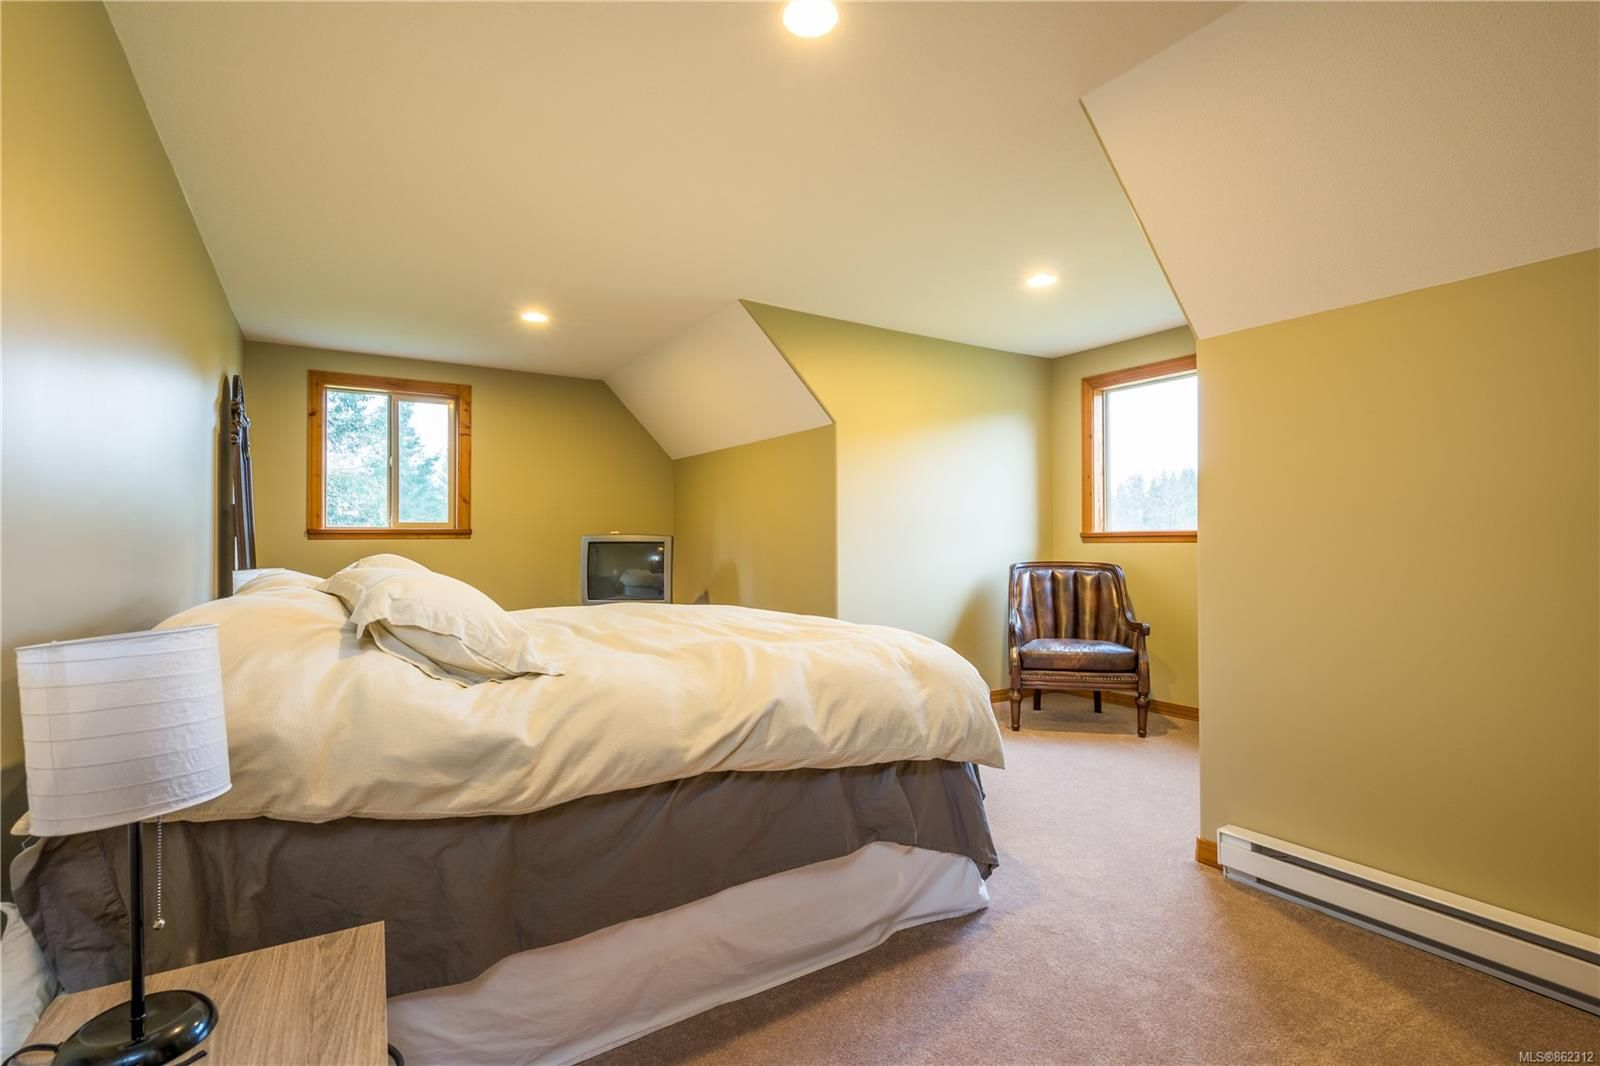 Photo 8: Photos: 7380 Plymouth Rd in : PA Alberni Valley House for sale (Port Alberni)  : MLS®# 862312